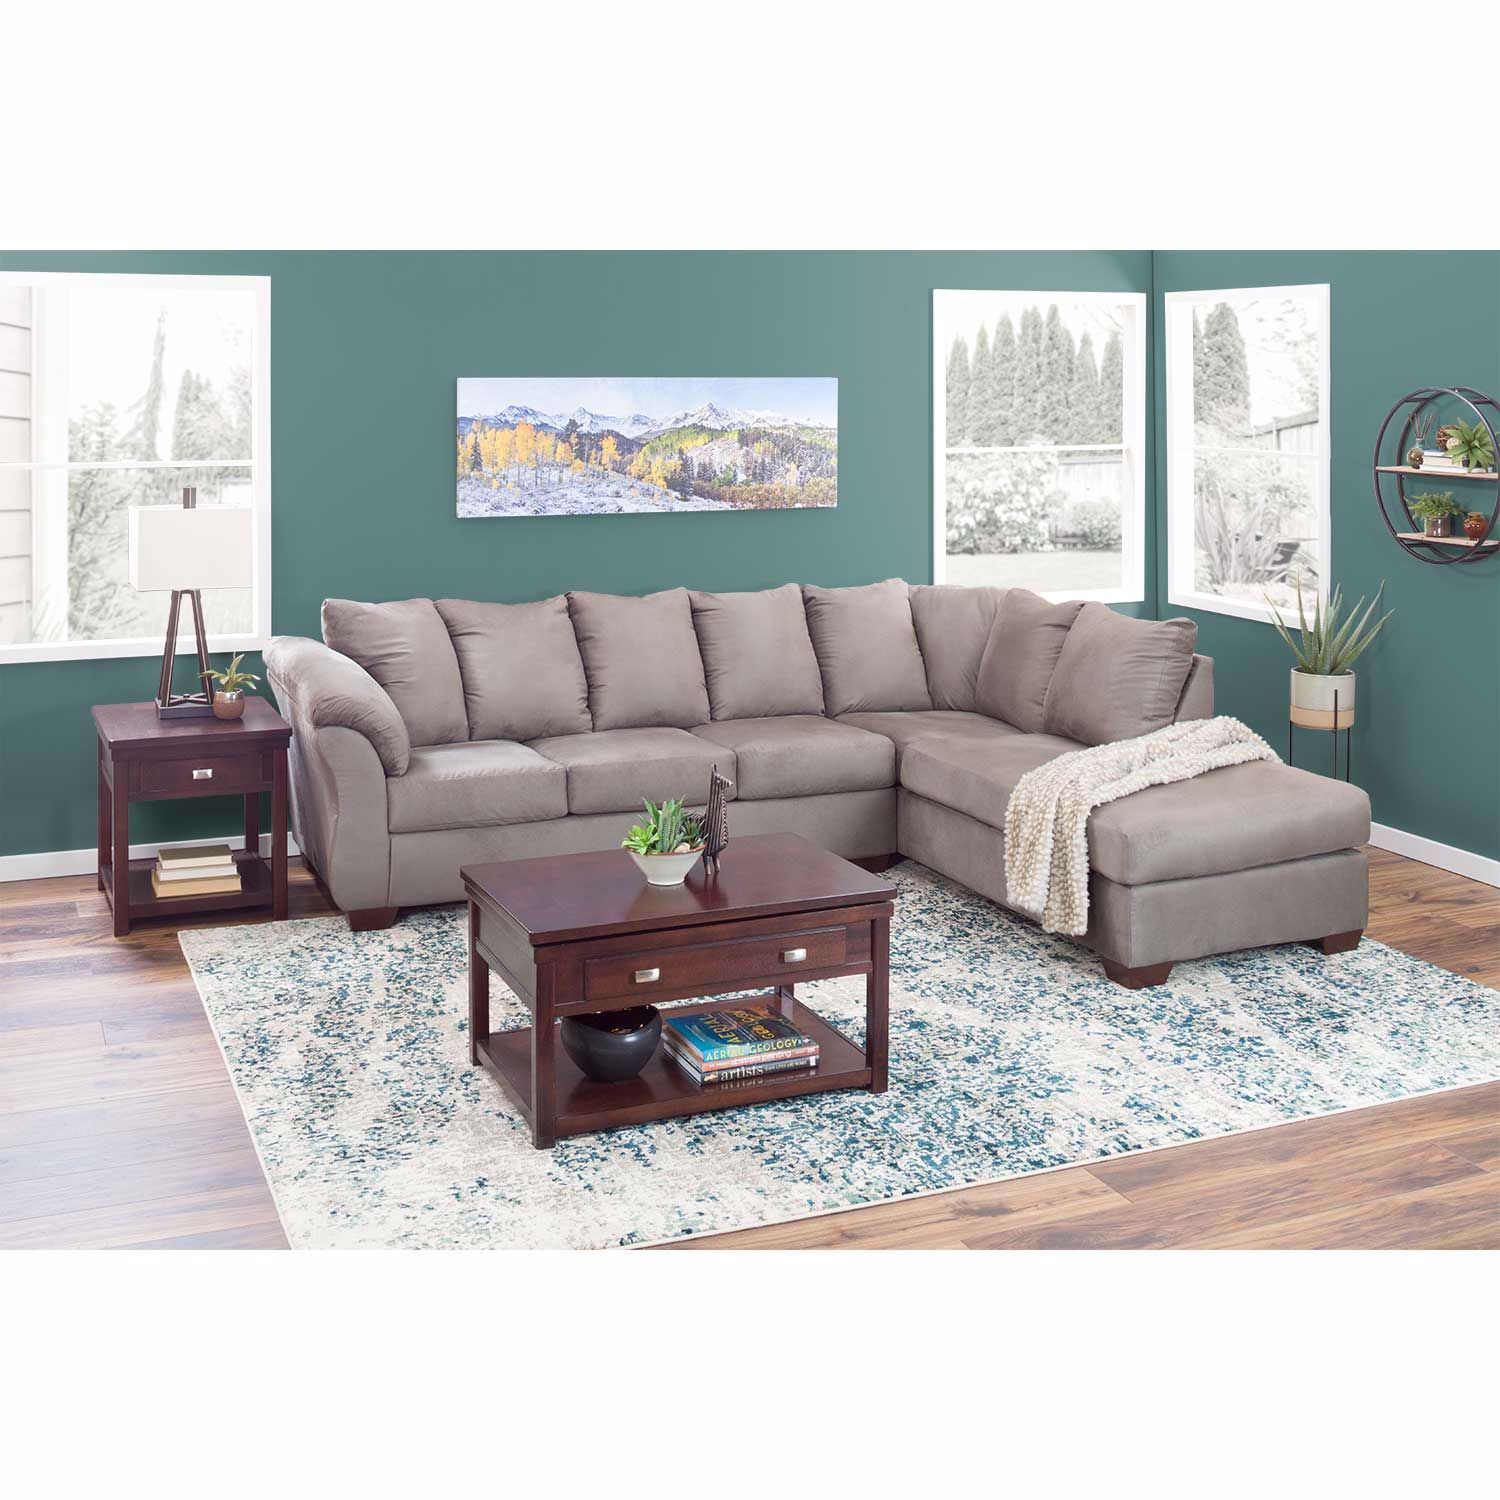 Picture of Darcy Cobblestone Gray 2 Piece Sectional w/ LAF Chaise